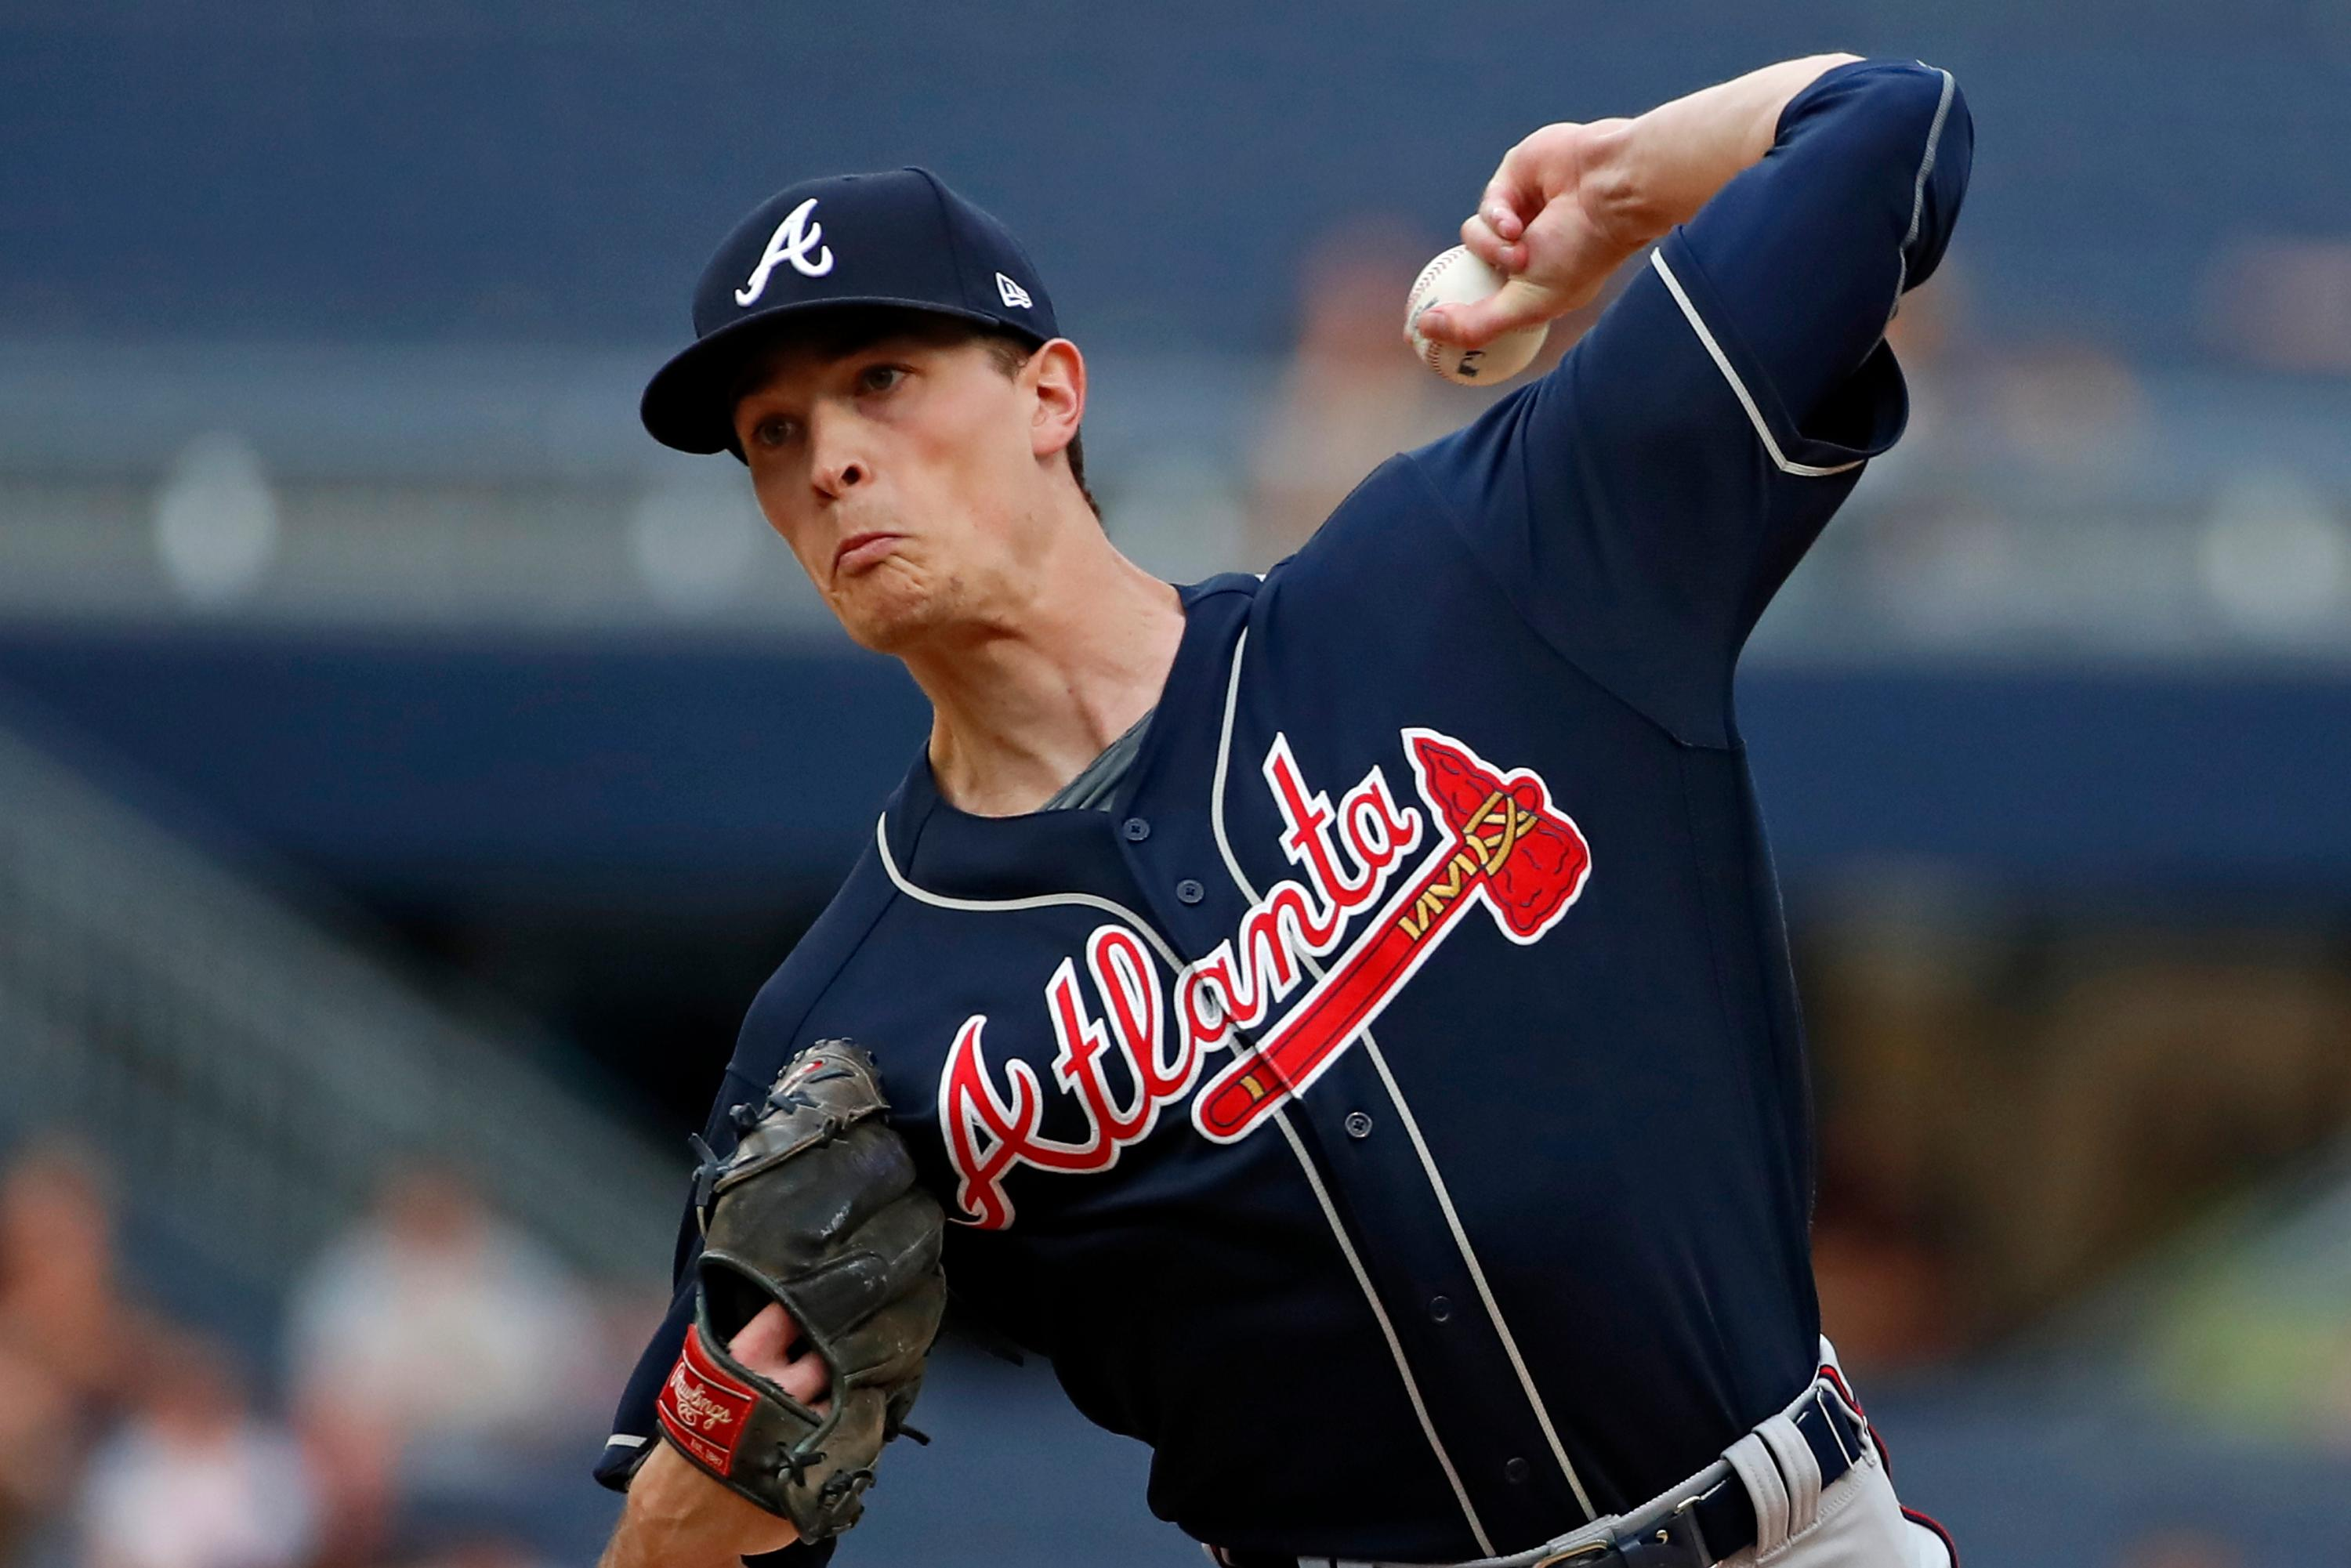 Atlanta Braves starting pitcher Max Fried delivers during the first inning of the team's baseball game against the Pittsburgh Pirates in Pittsburgh, Tuesday, June 4, 2019. (AP Photo/Gene J. Puskar)